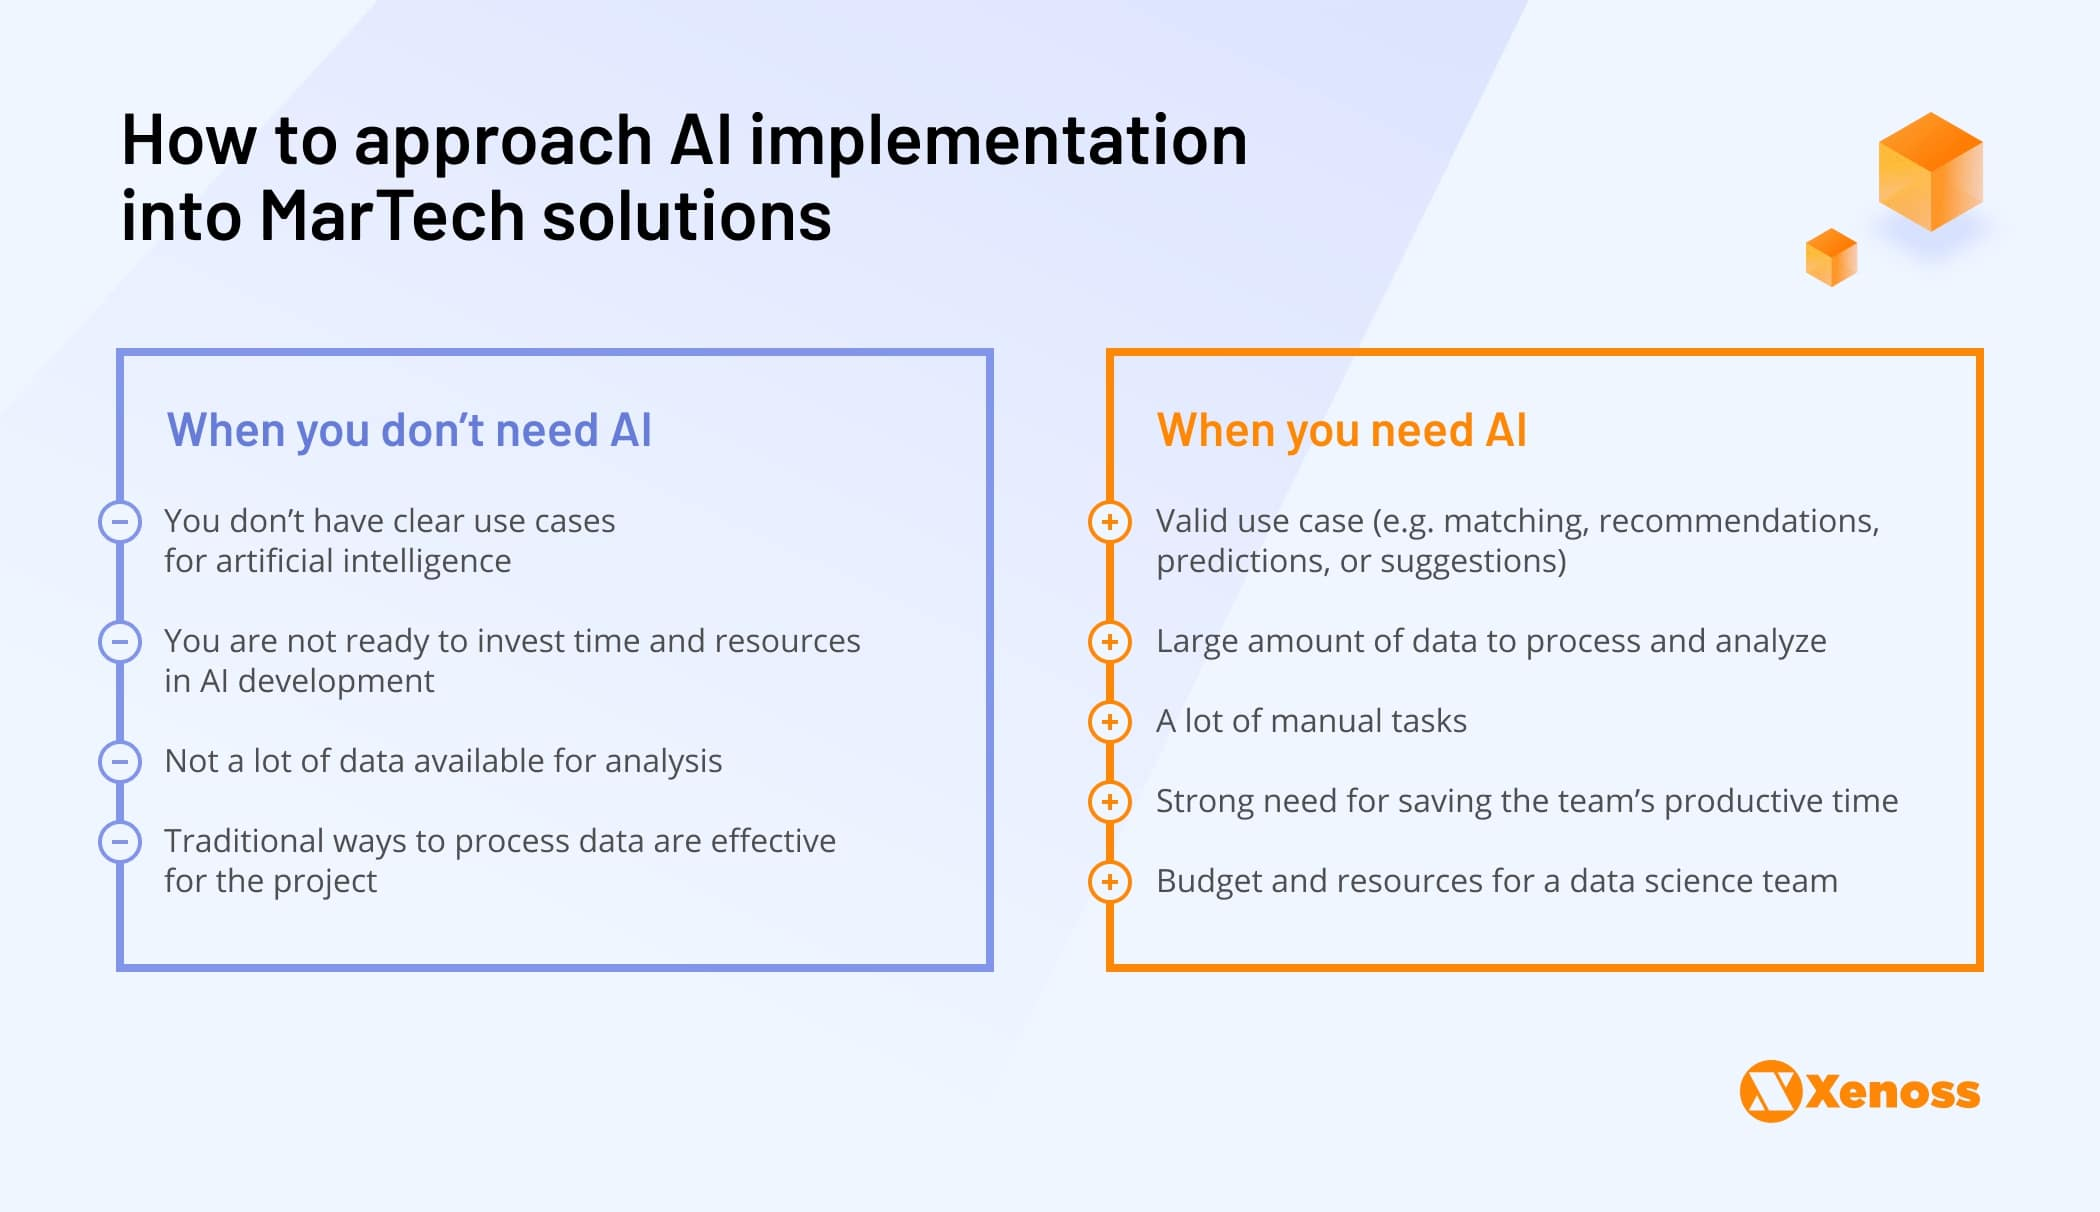 Do you need AI in your MarTech product   Xenoss Blog